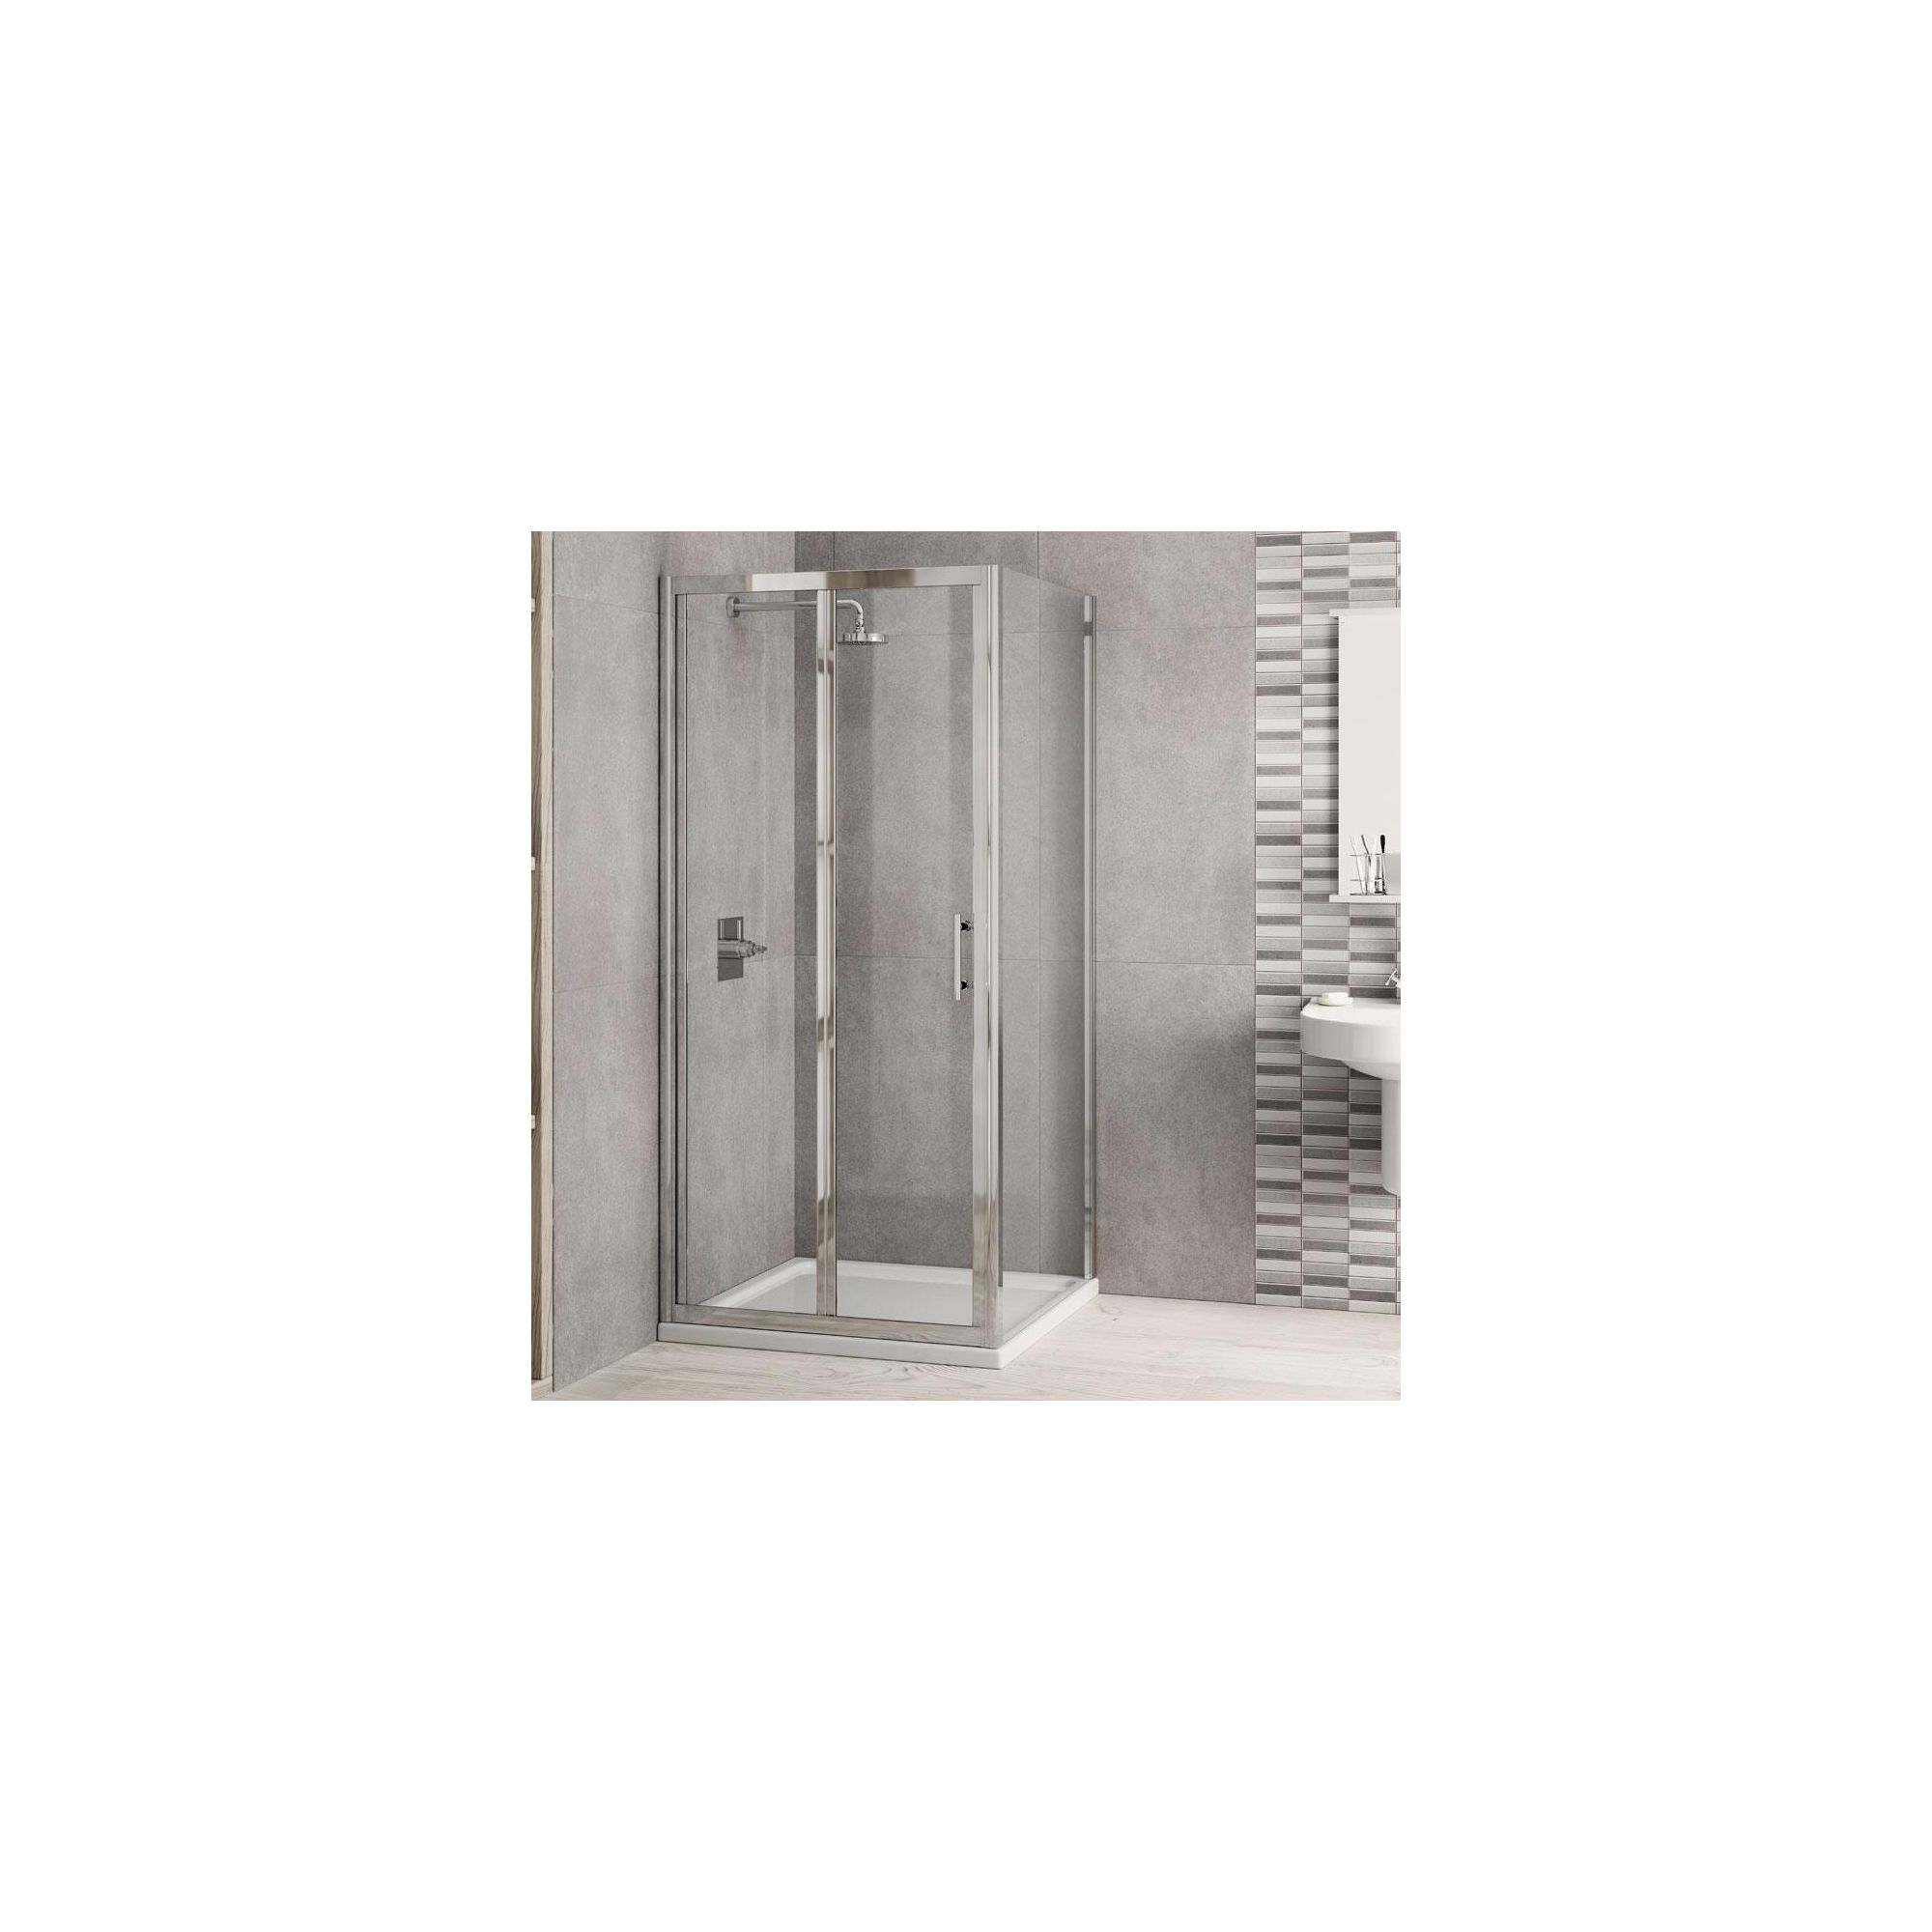 Elemis Inspire Bi-Fold Door Shower Enclosure, 1000mm x 900mm, 6mm Glass, Low Profile Tray at Tesco Direct